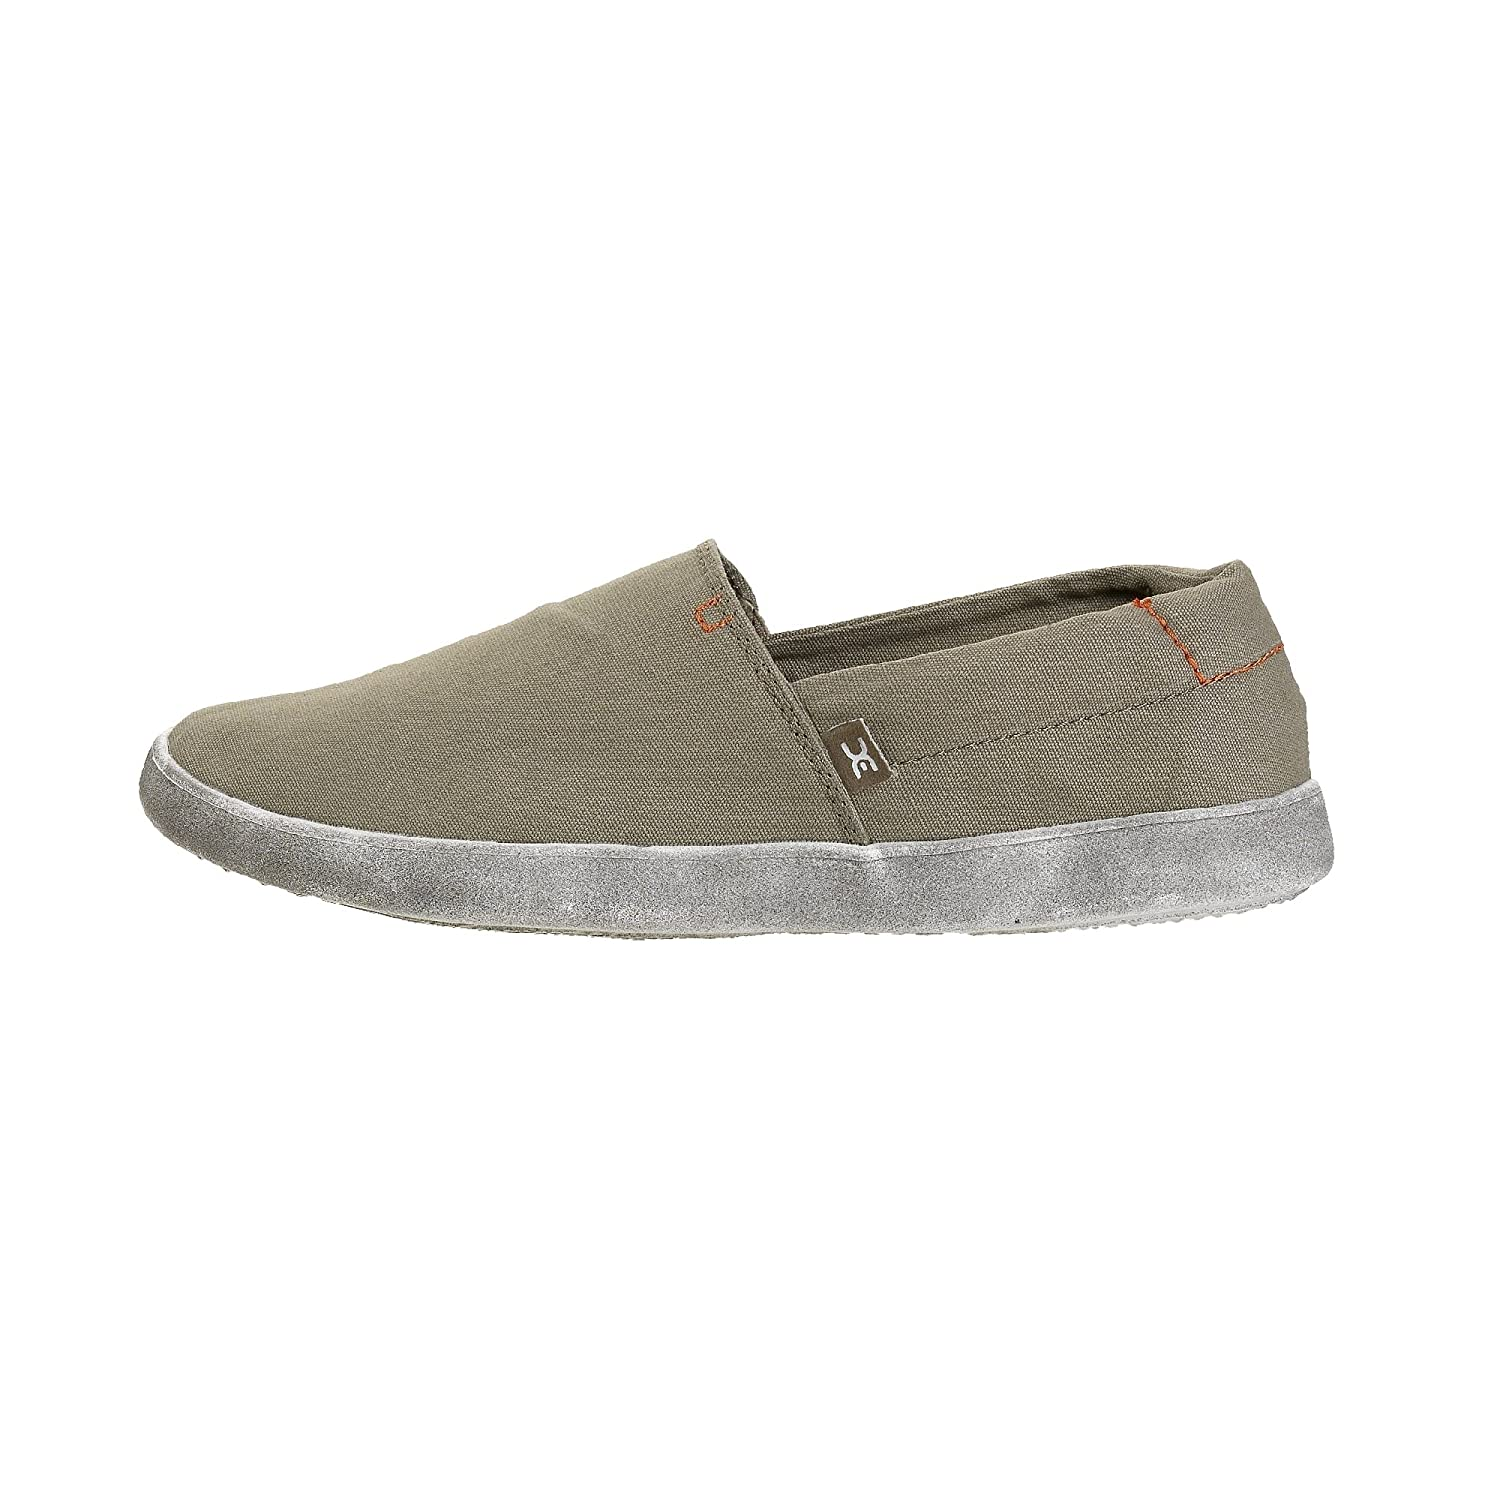 Deslizar Gris Carly Dude Shoes Mujeres: Amazon.es: Zapatos y complementos